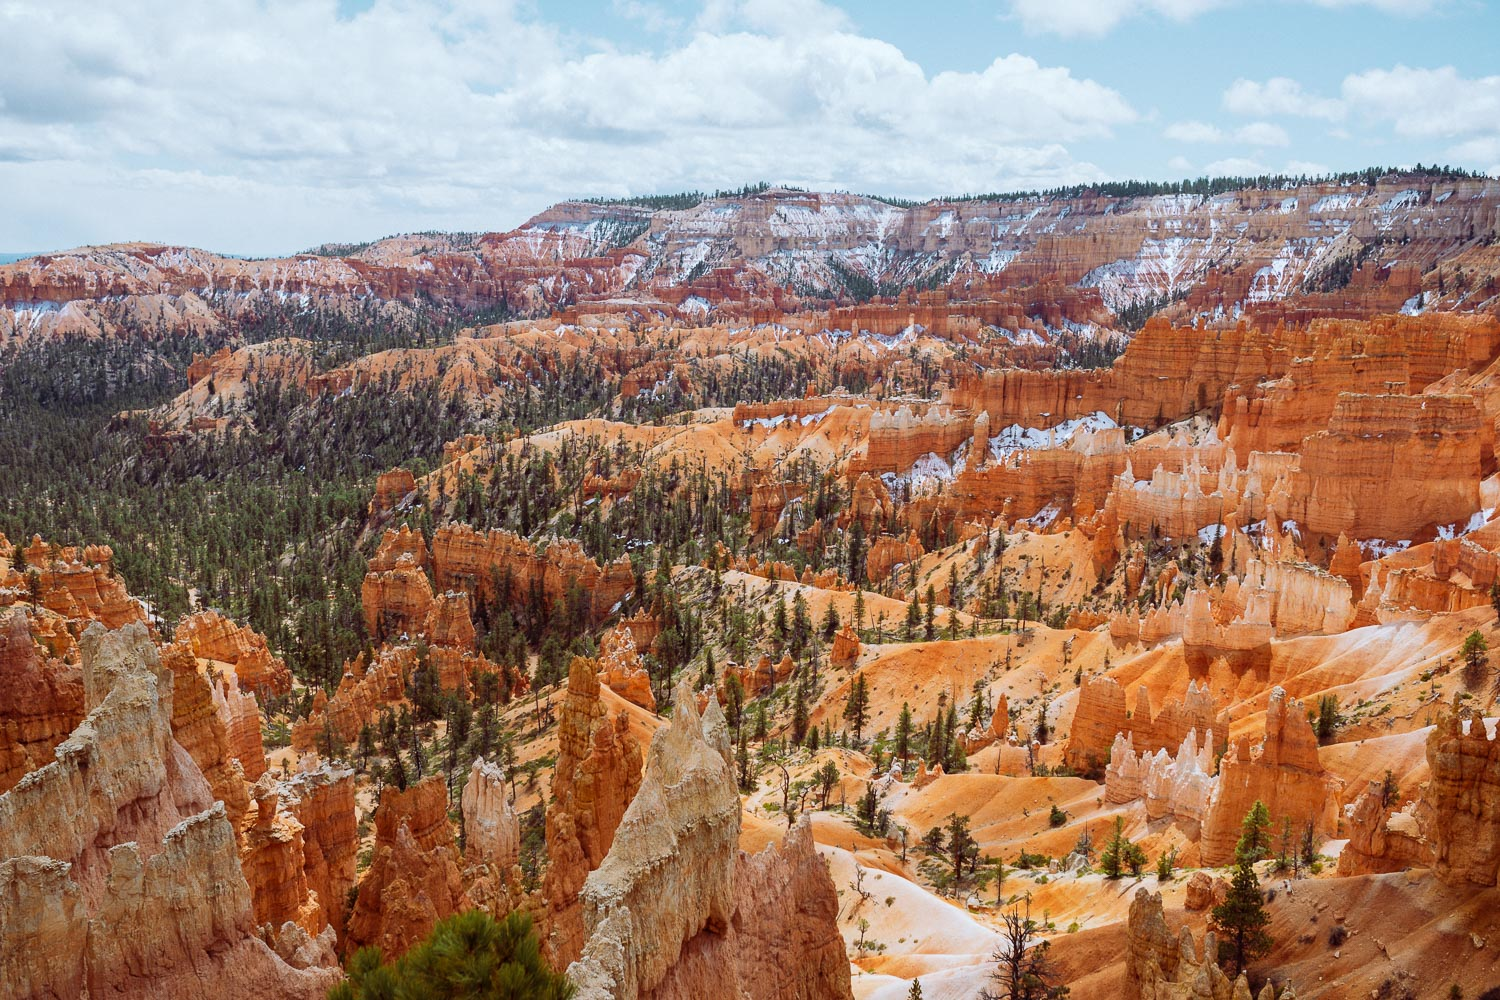 Rachel Off Duty: The View of the Bryce Canyon National Park Amphitheater